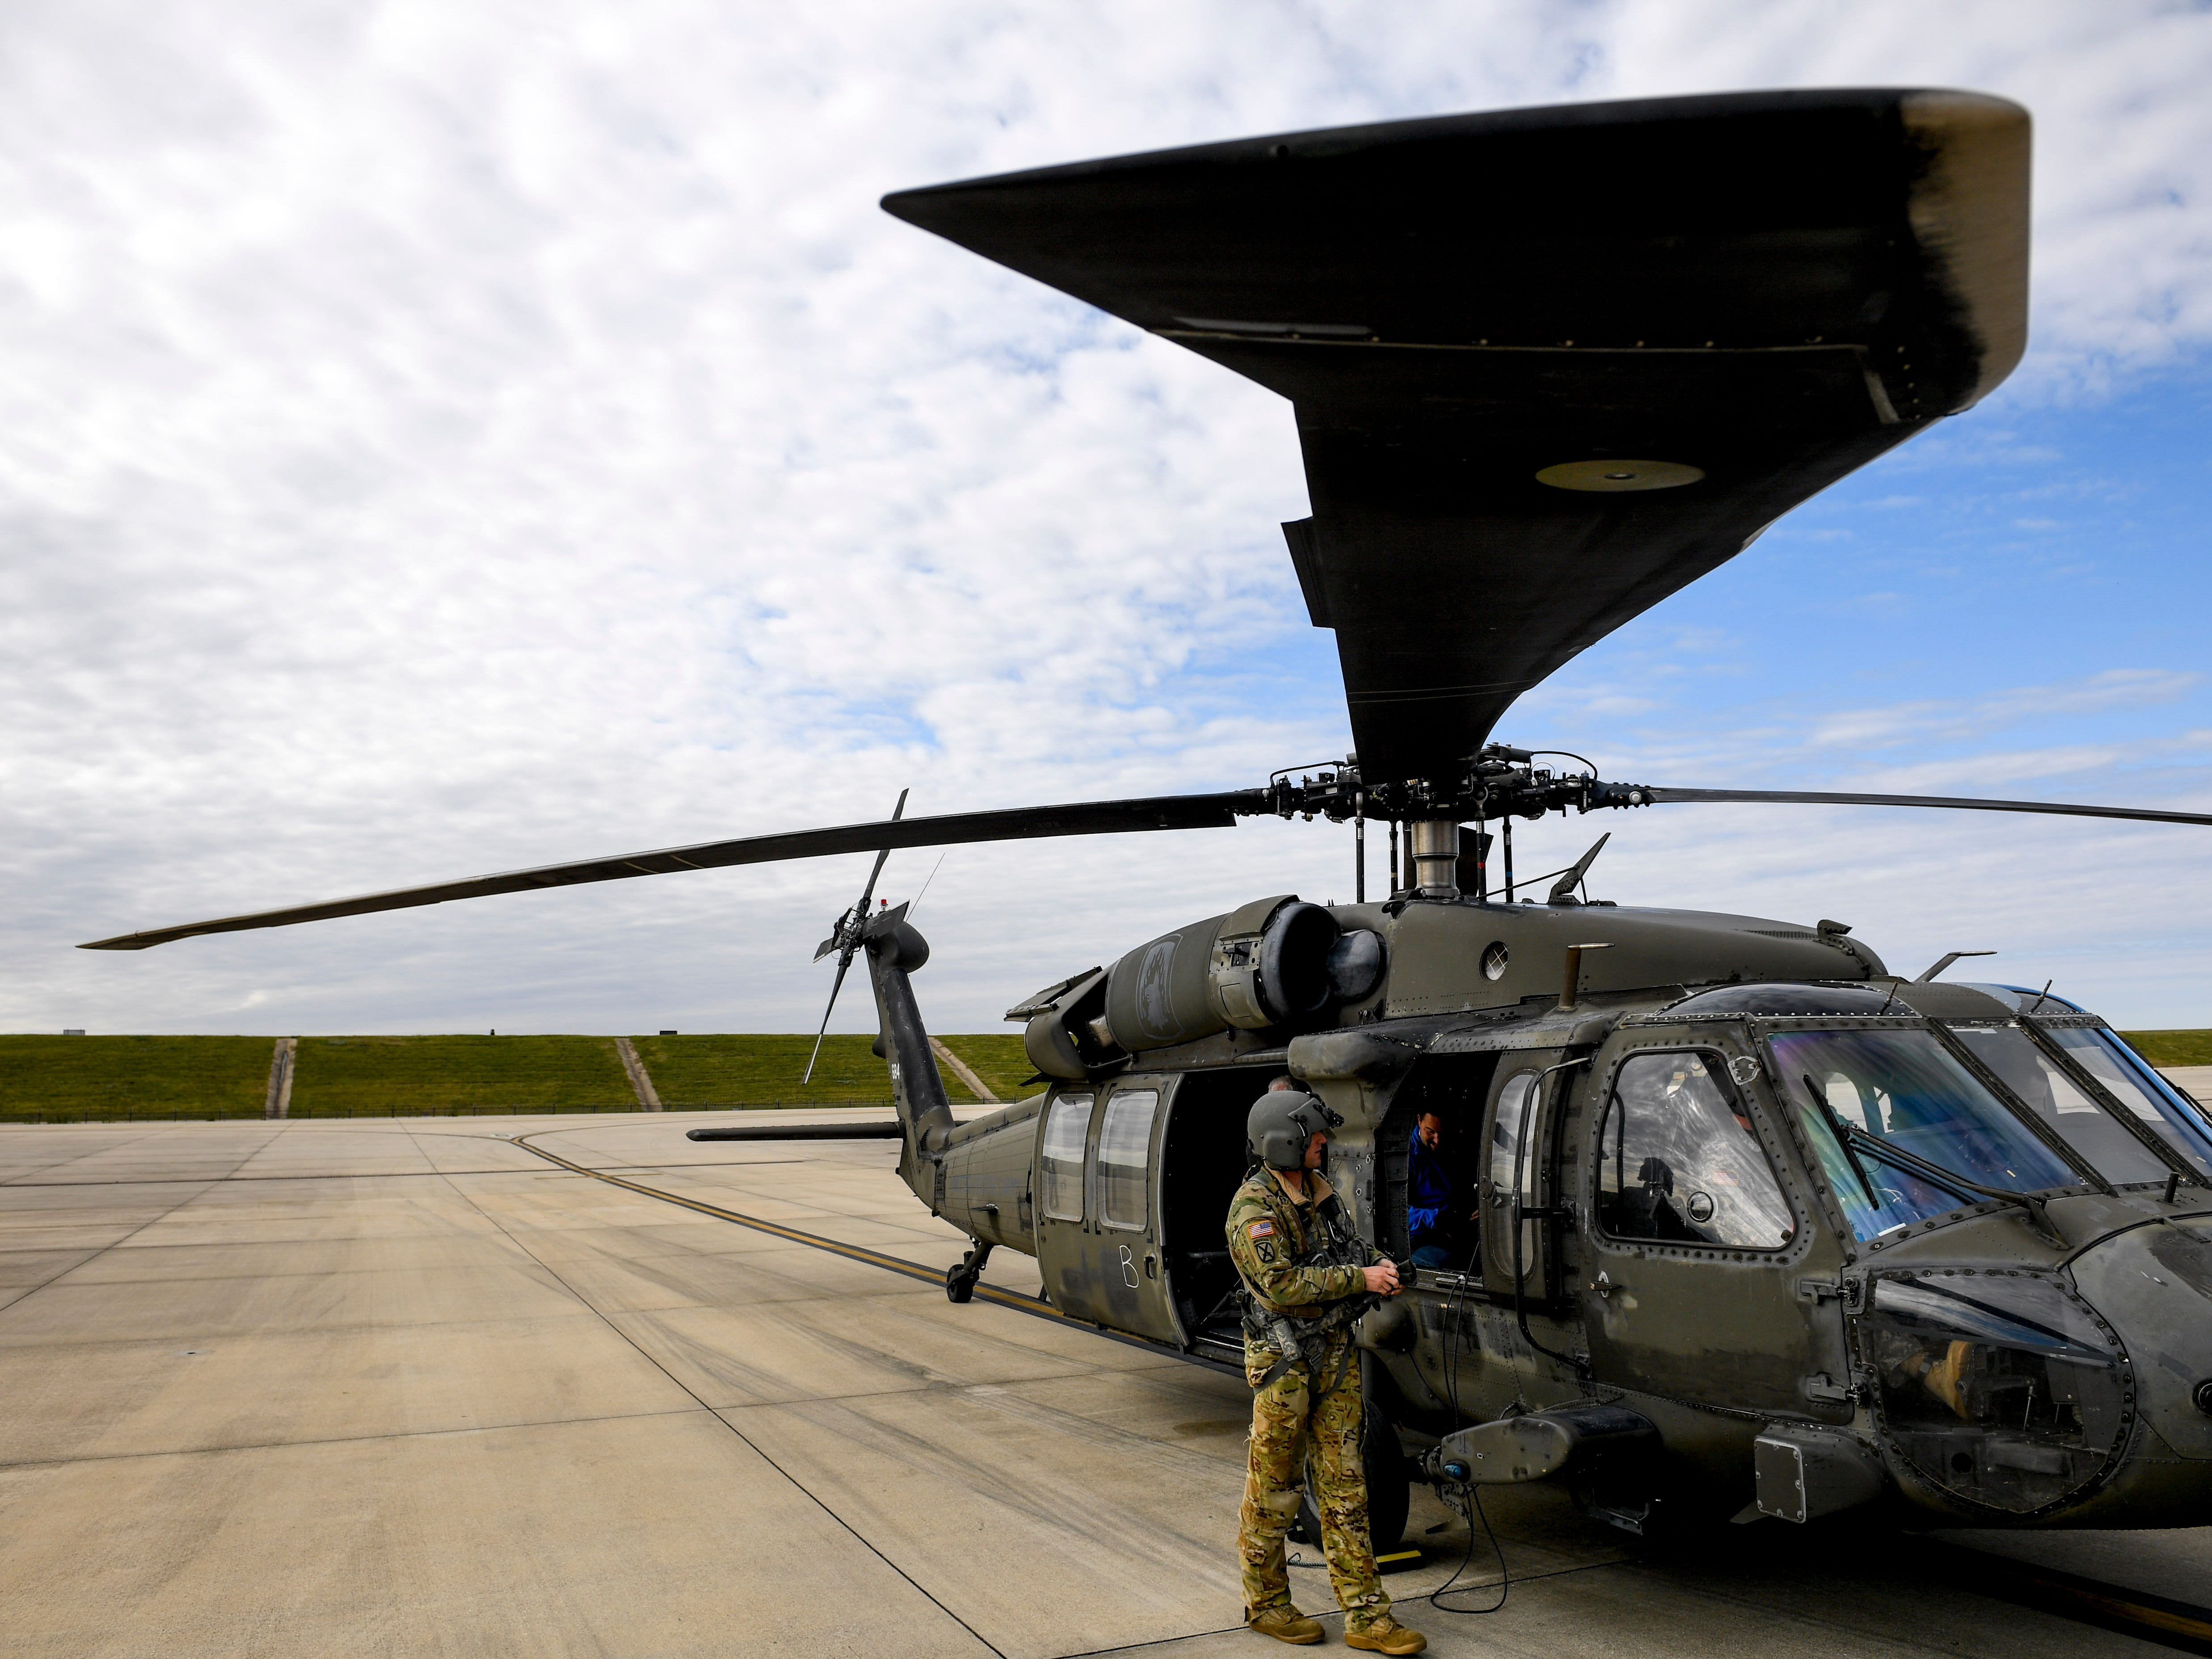 A National Guardsmen prepares their Black Hawk helicopter for a flight during the annual Bosslift event put on by Employer Support of the Guard and Reserve (ESGR) and the Tennessee National Guard at 164th Airlift Wing in Memphis, Tenn., on Thursday, Nov. 8, 2018.